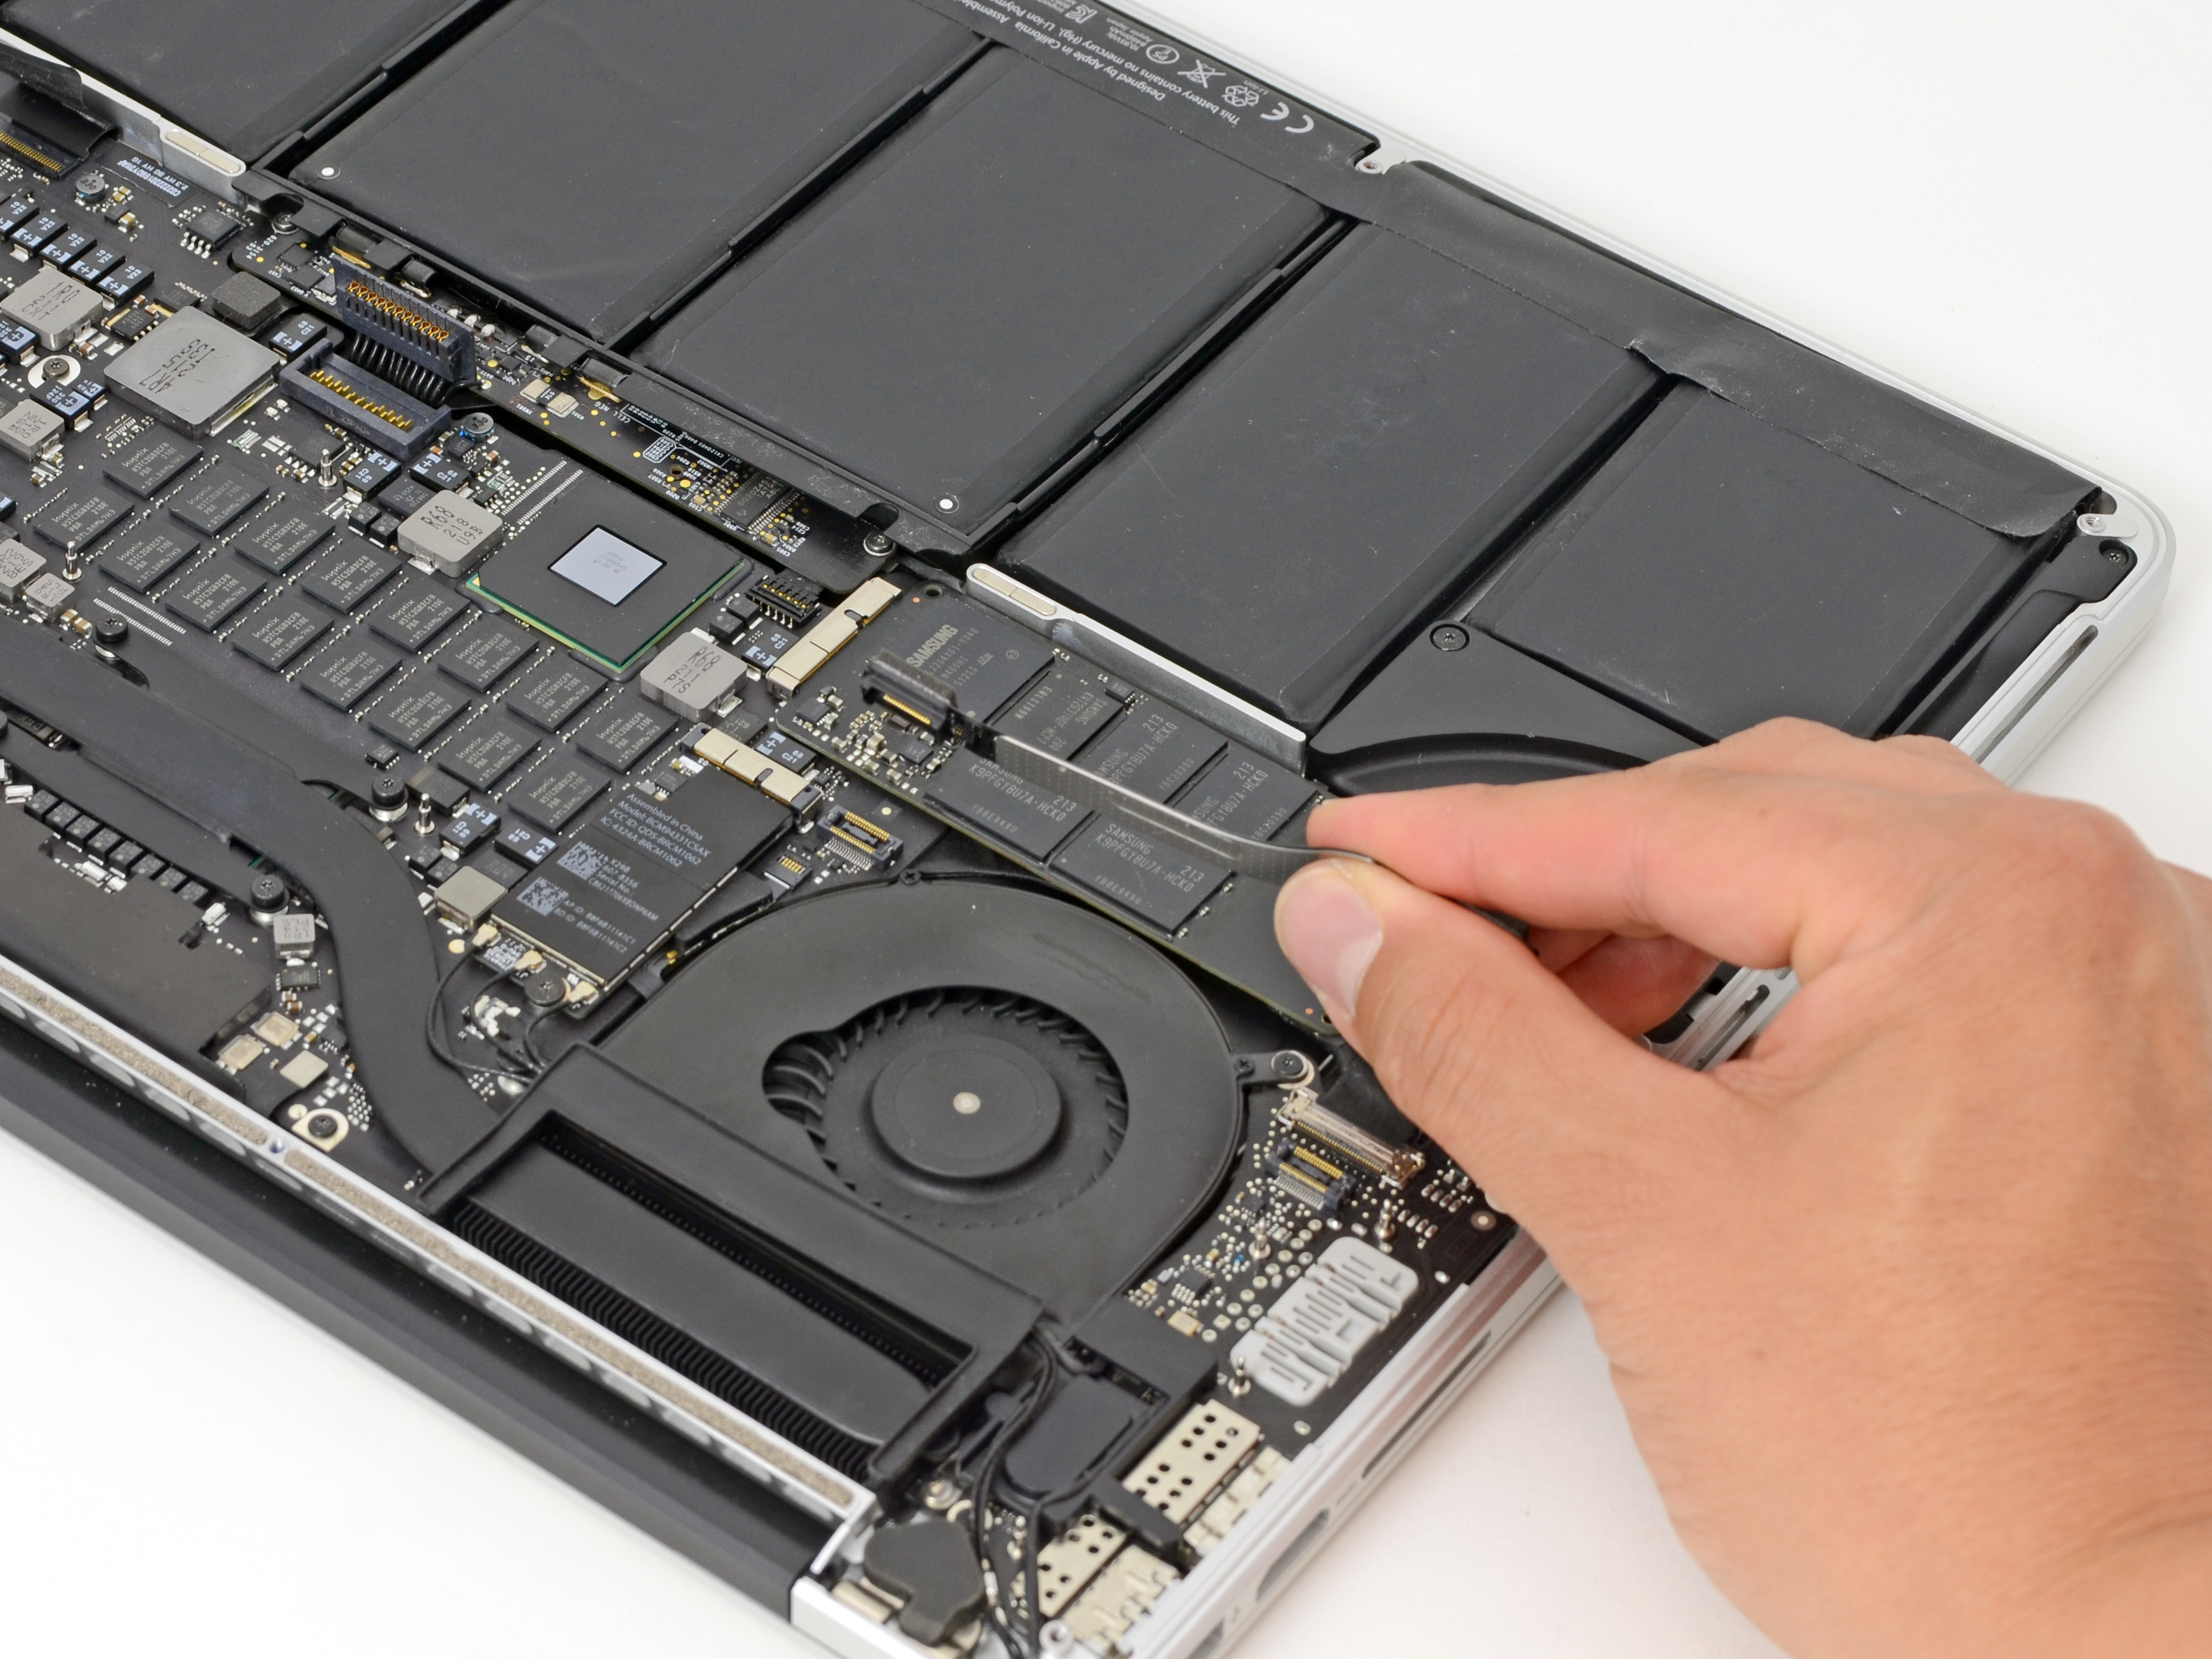 macbook pro late 2013 how to open